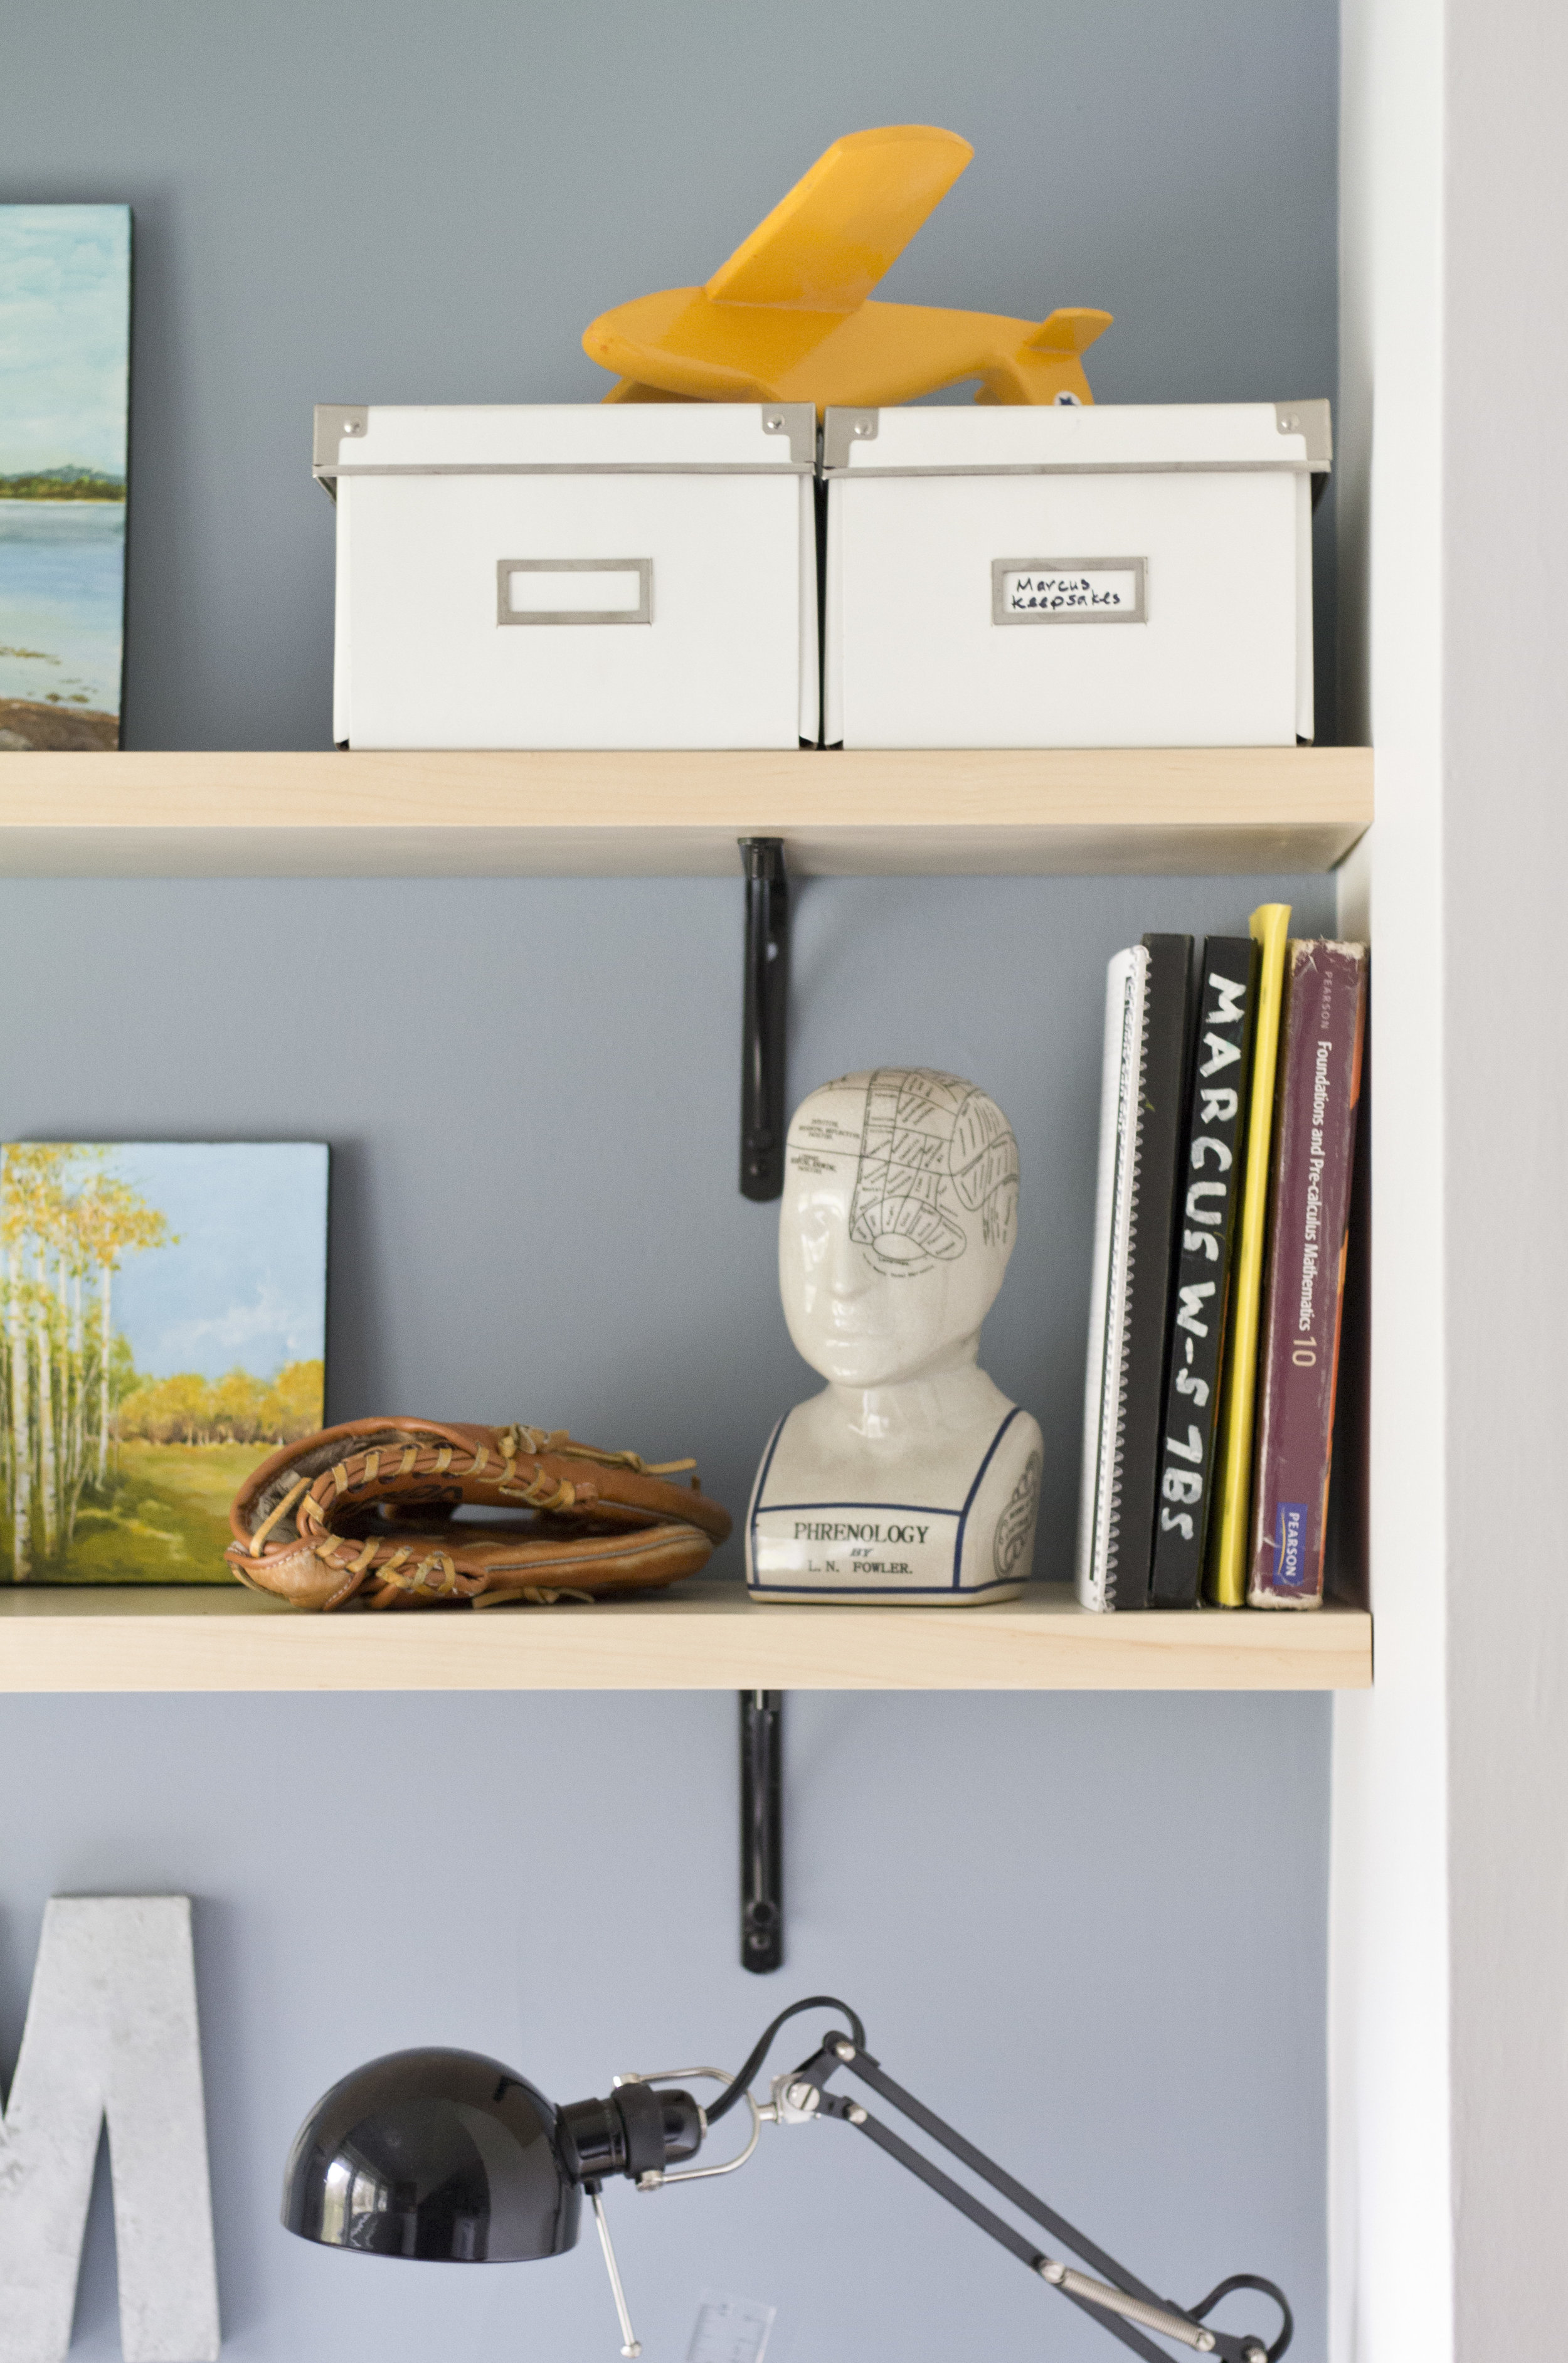 Marcus_detail_shelves_IMG_6912.JPG